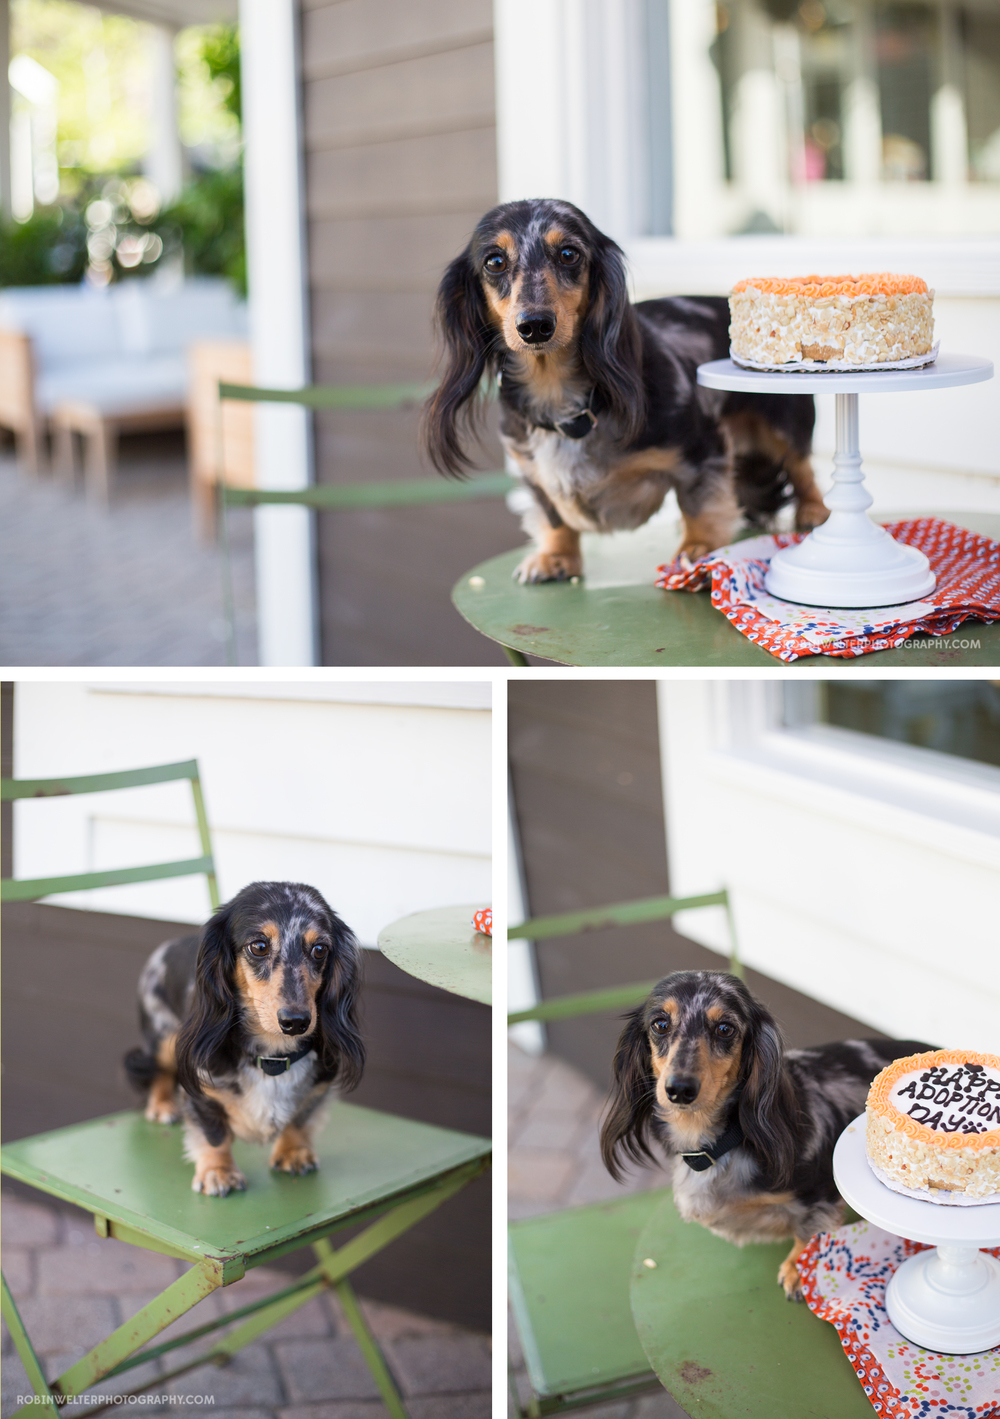 NewfandHound- Cody's Adoption Party! | Robin Welter Photography